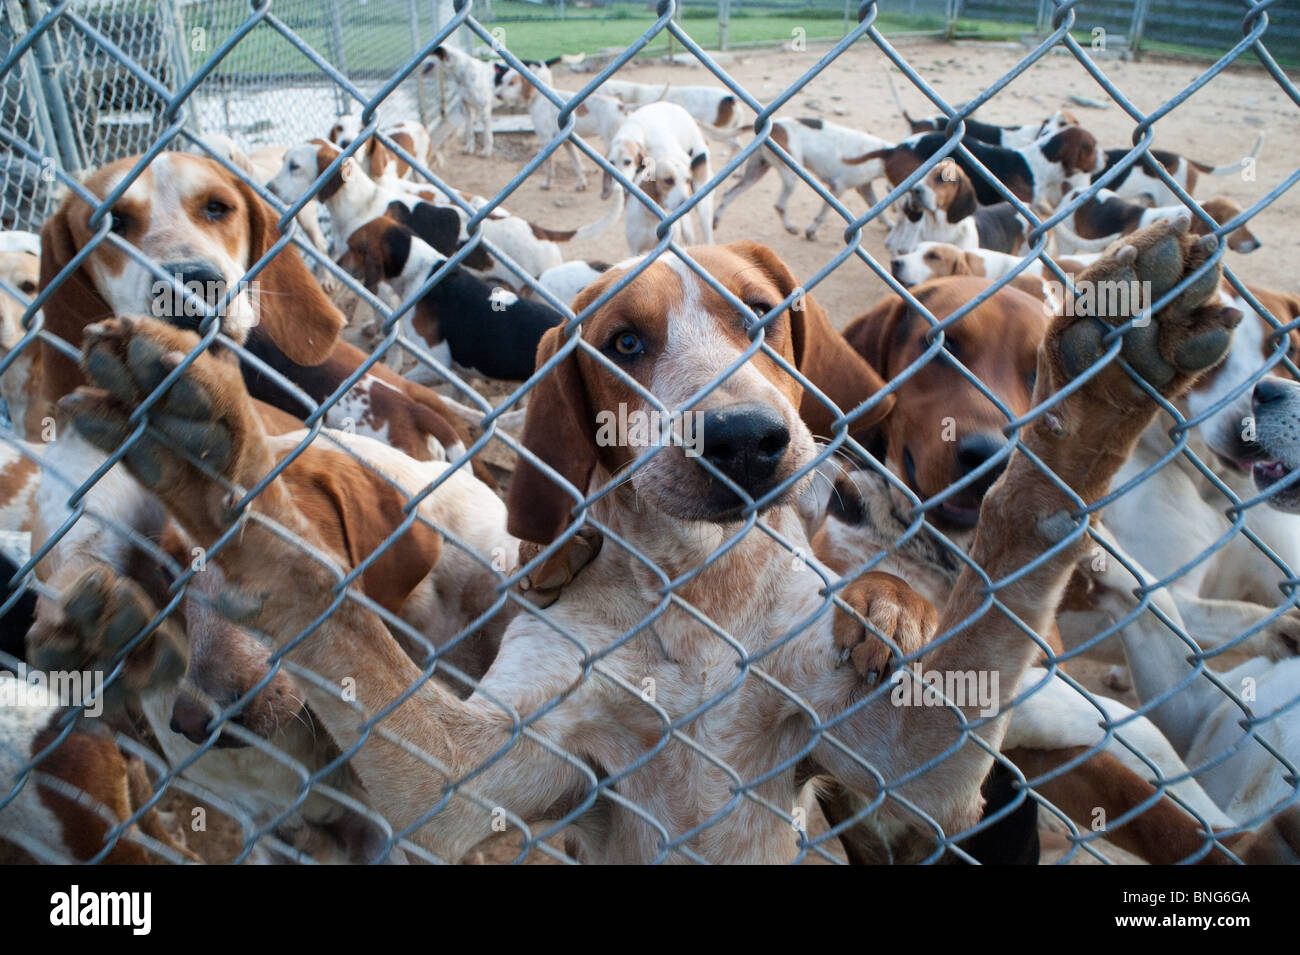 Fox hounds - Stock Image